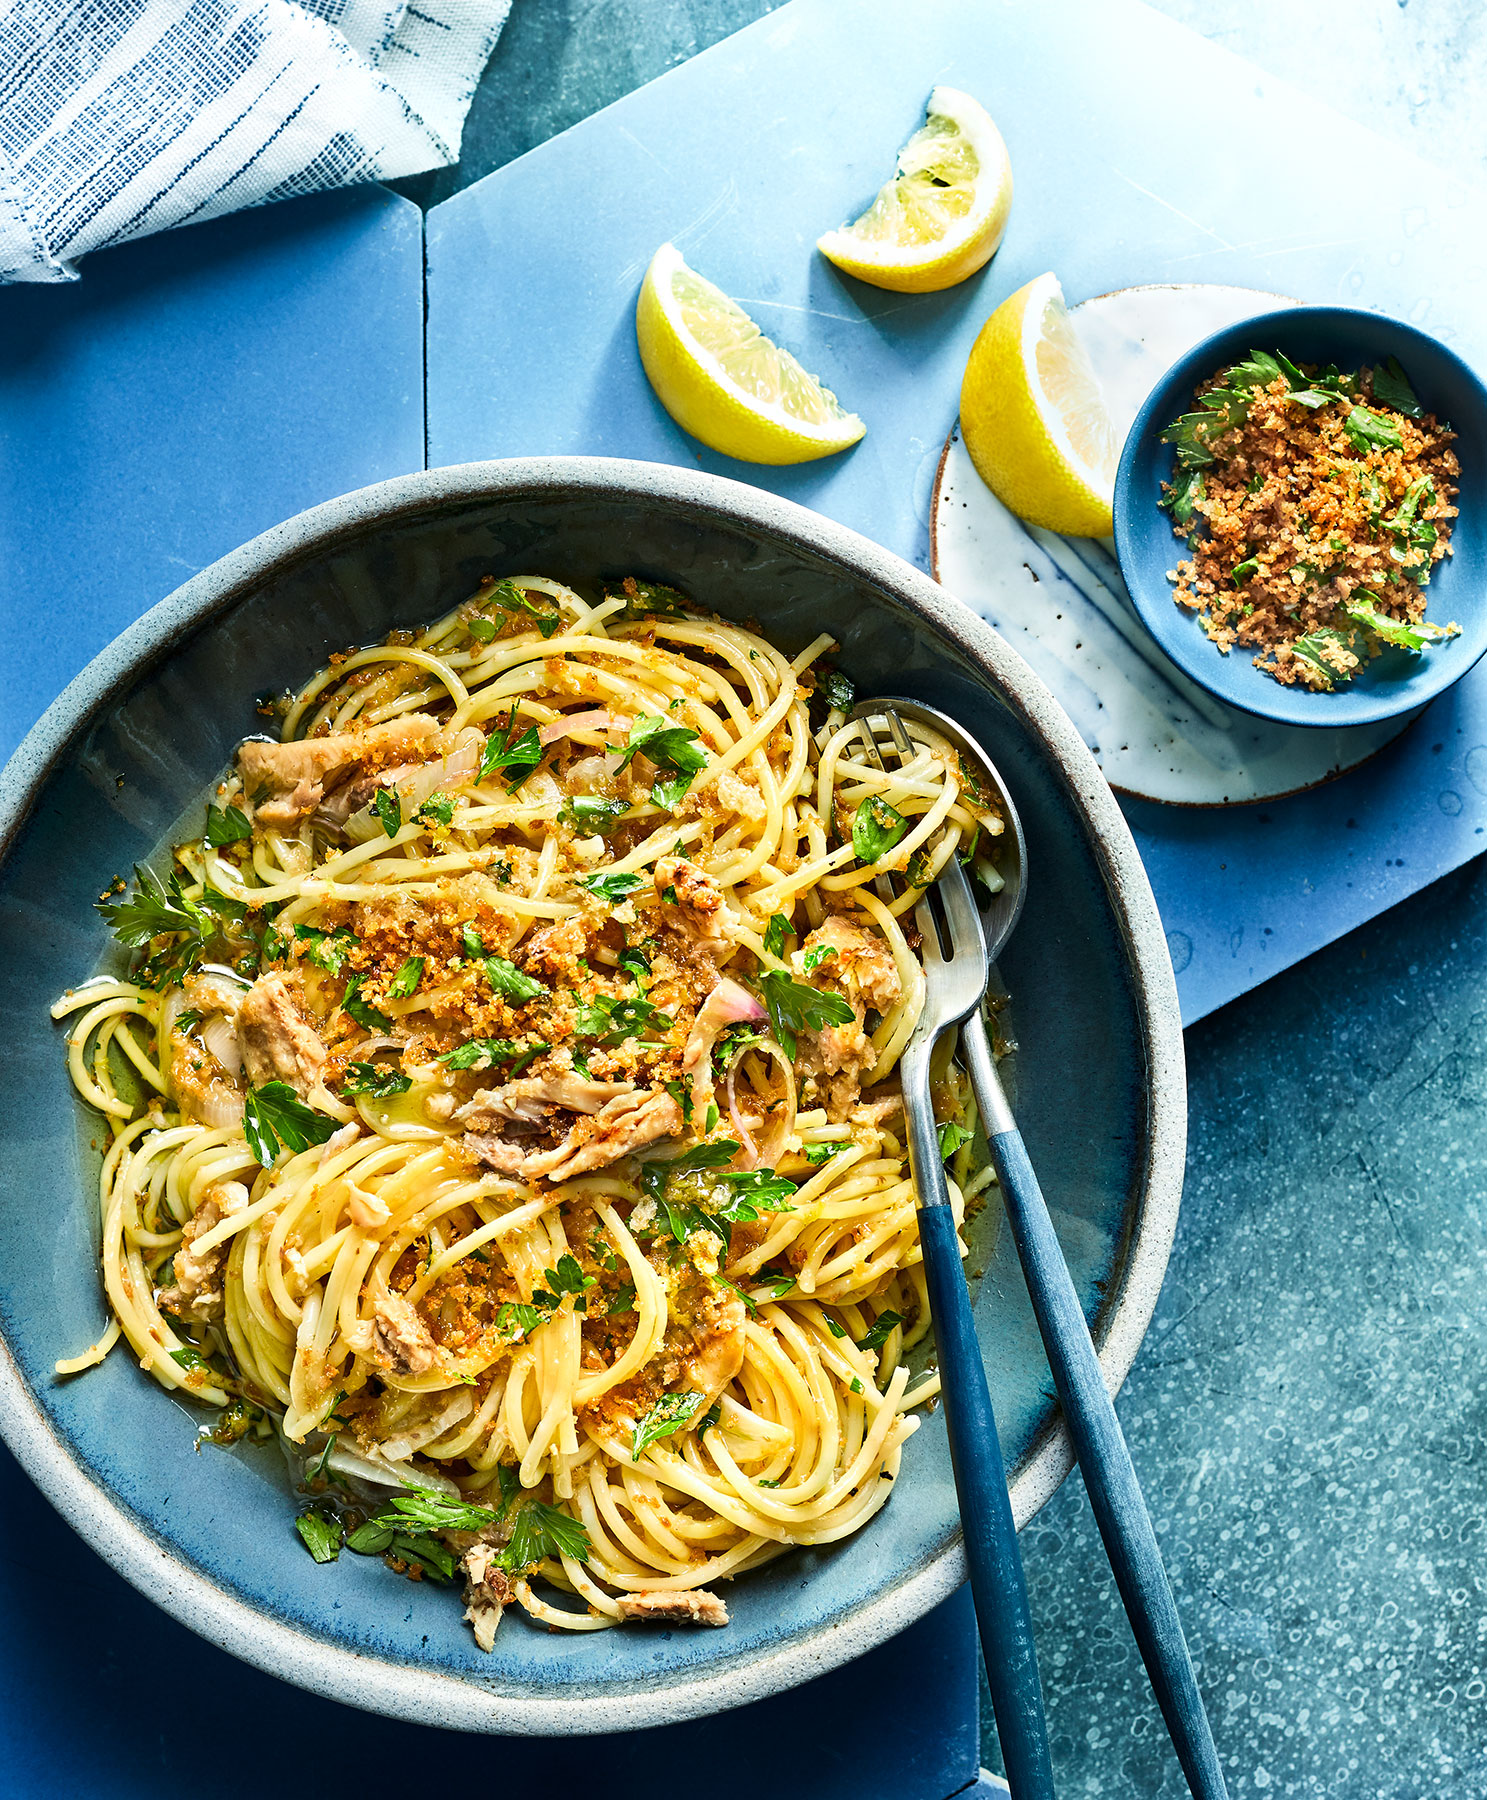 Lemony Spaghetti With Sardines and Bread Crumbs